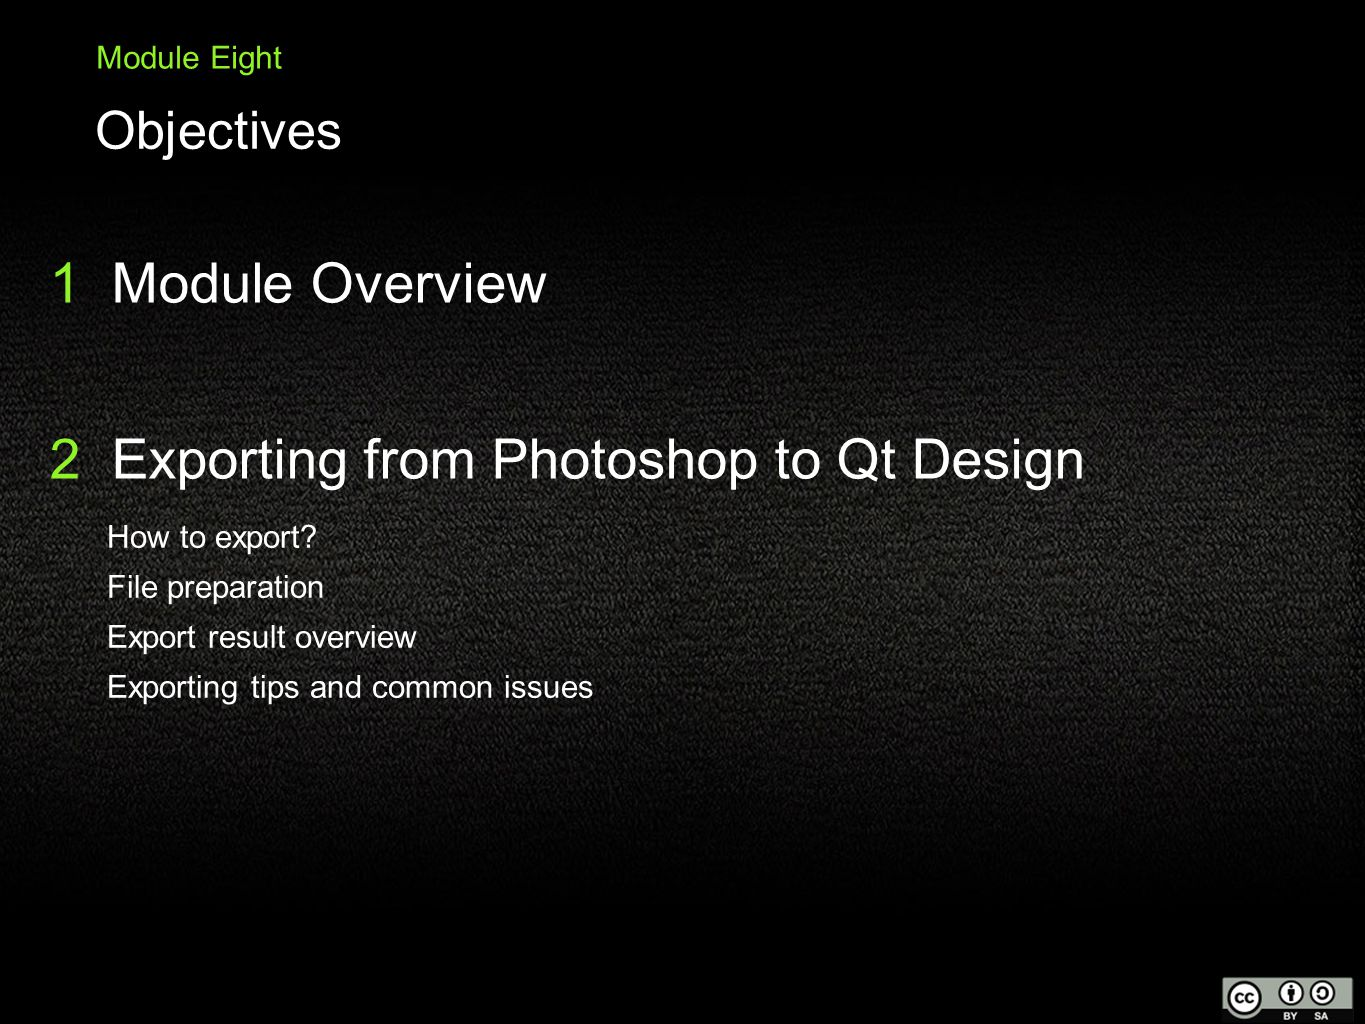 2 Exporting from Photoshop to Qt Design 3 Building the Mockup 4 Questions 1 Module Overview Module Eight Topics 5 Lab